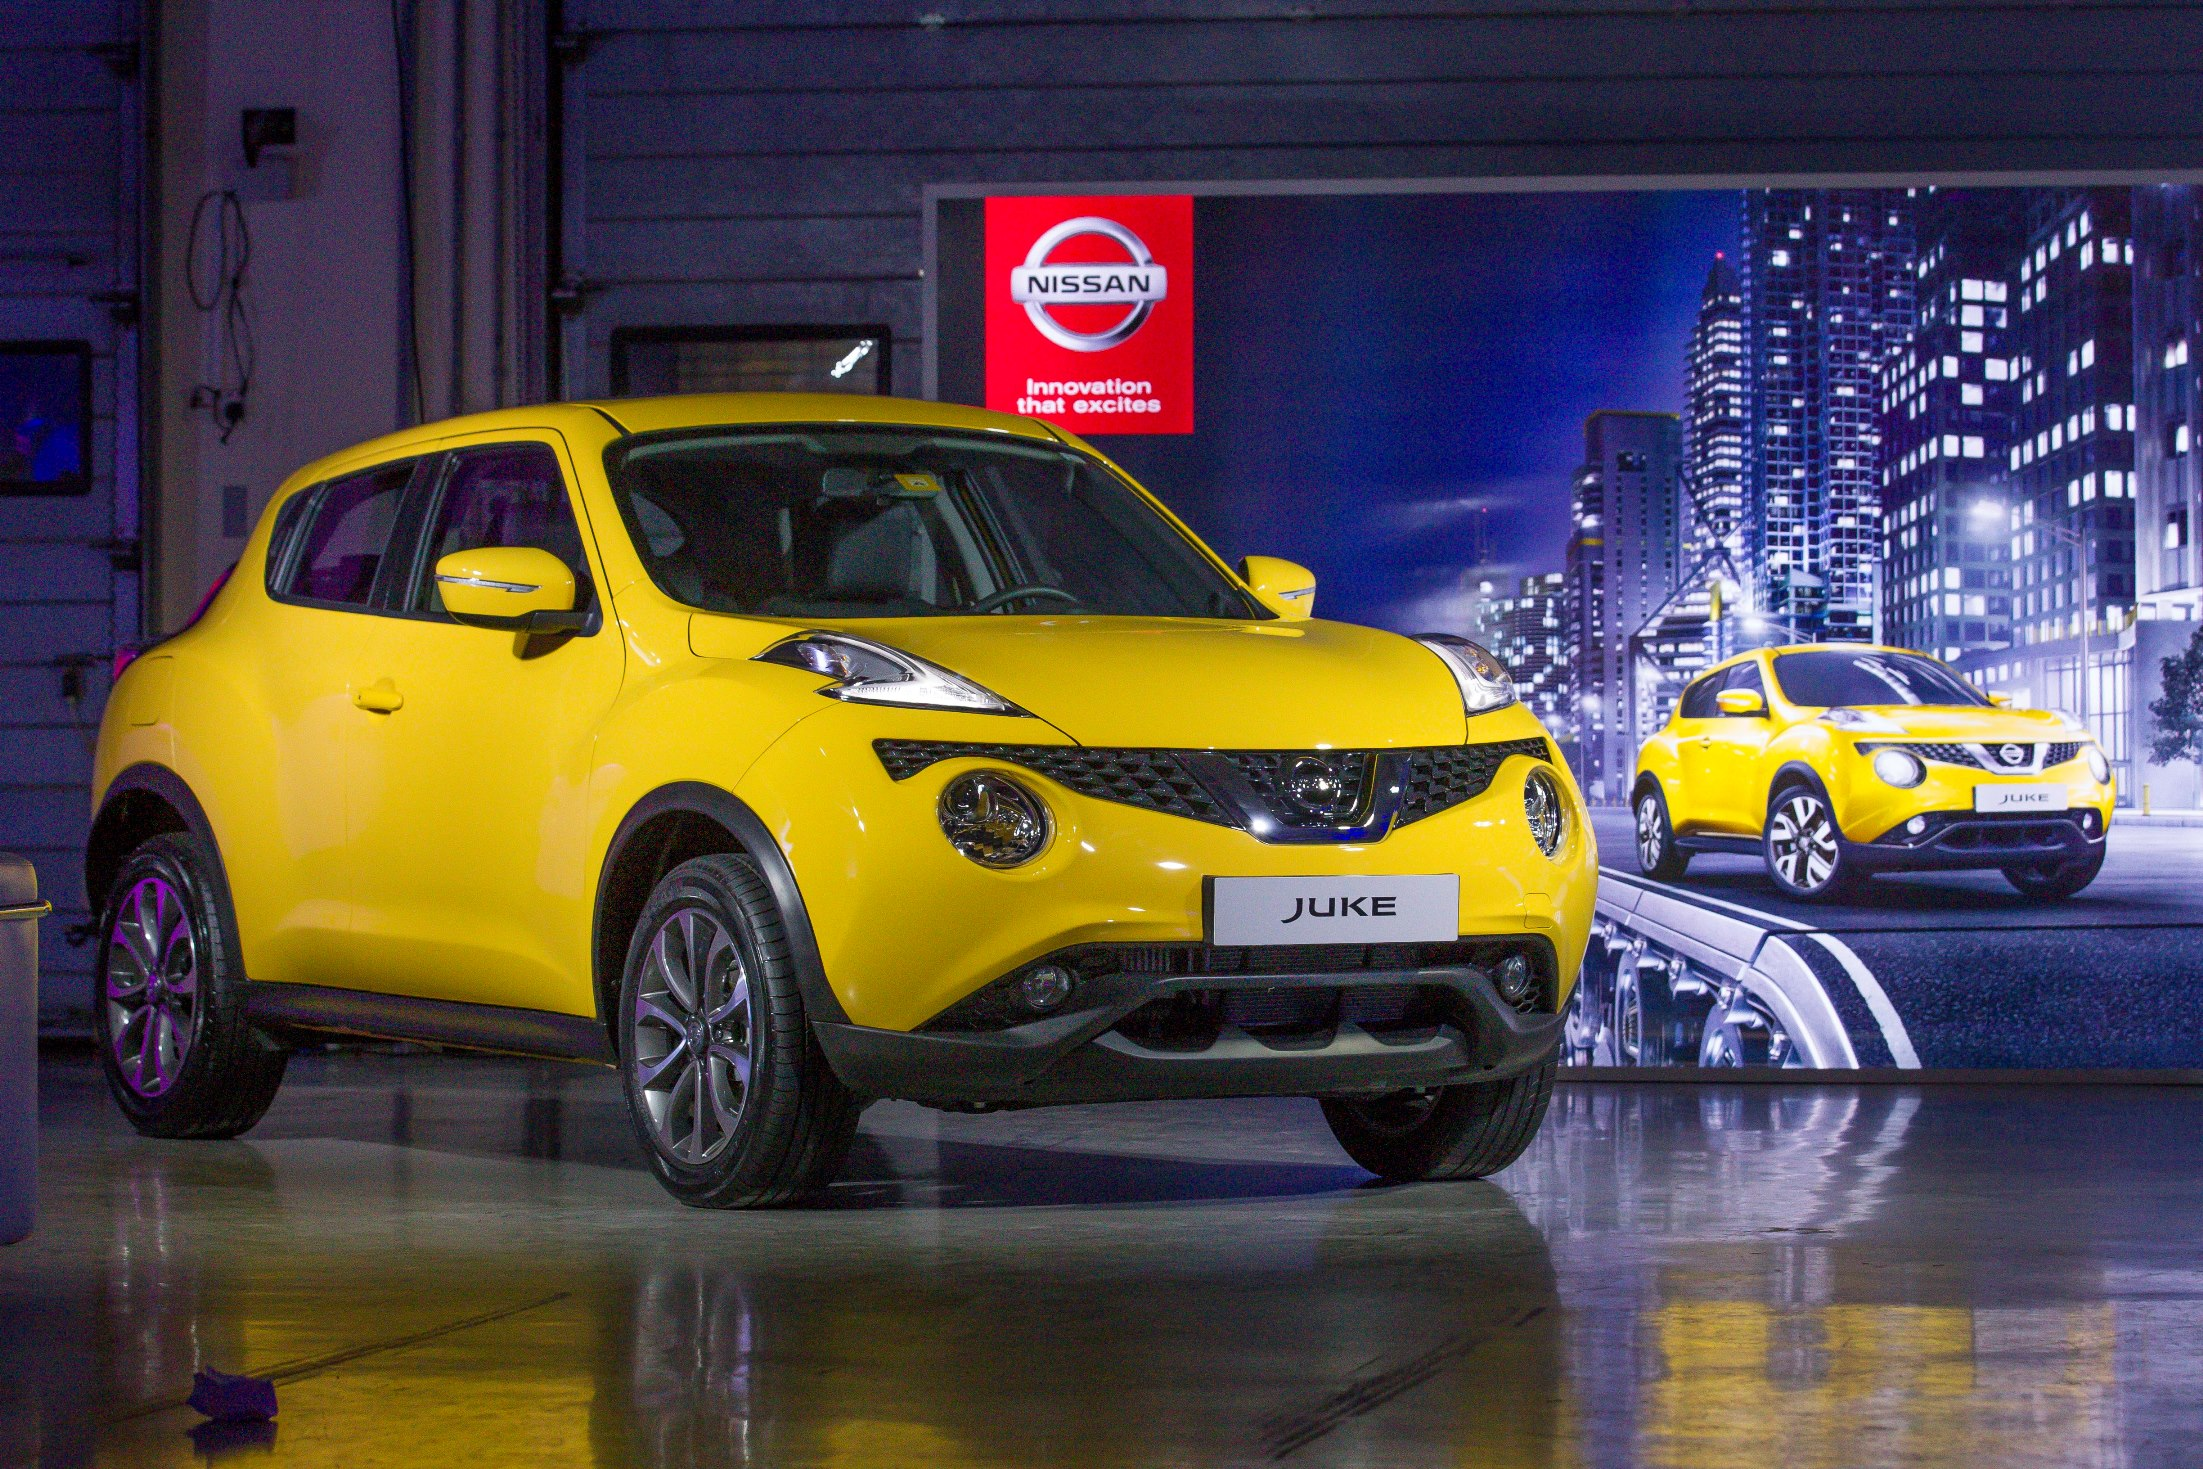 Nissan 2015 Juke Launch Event (2)